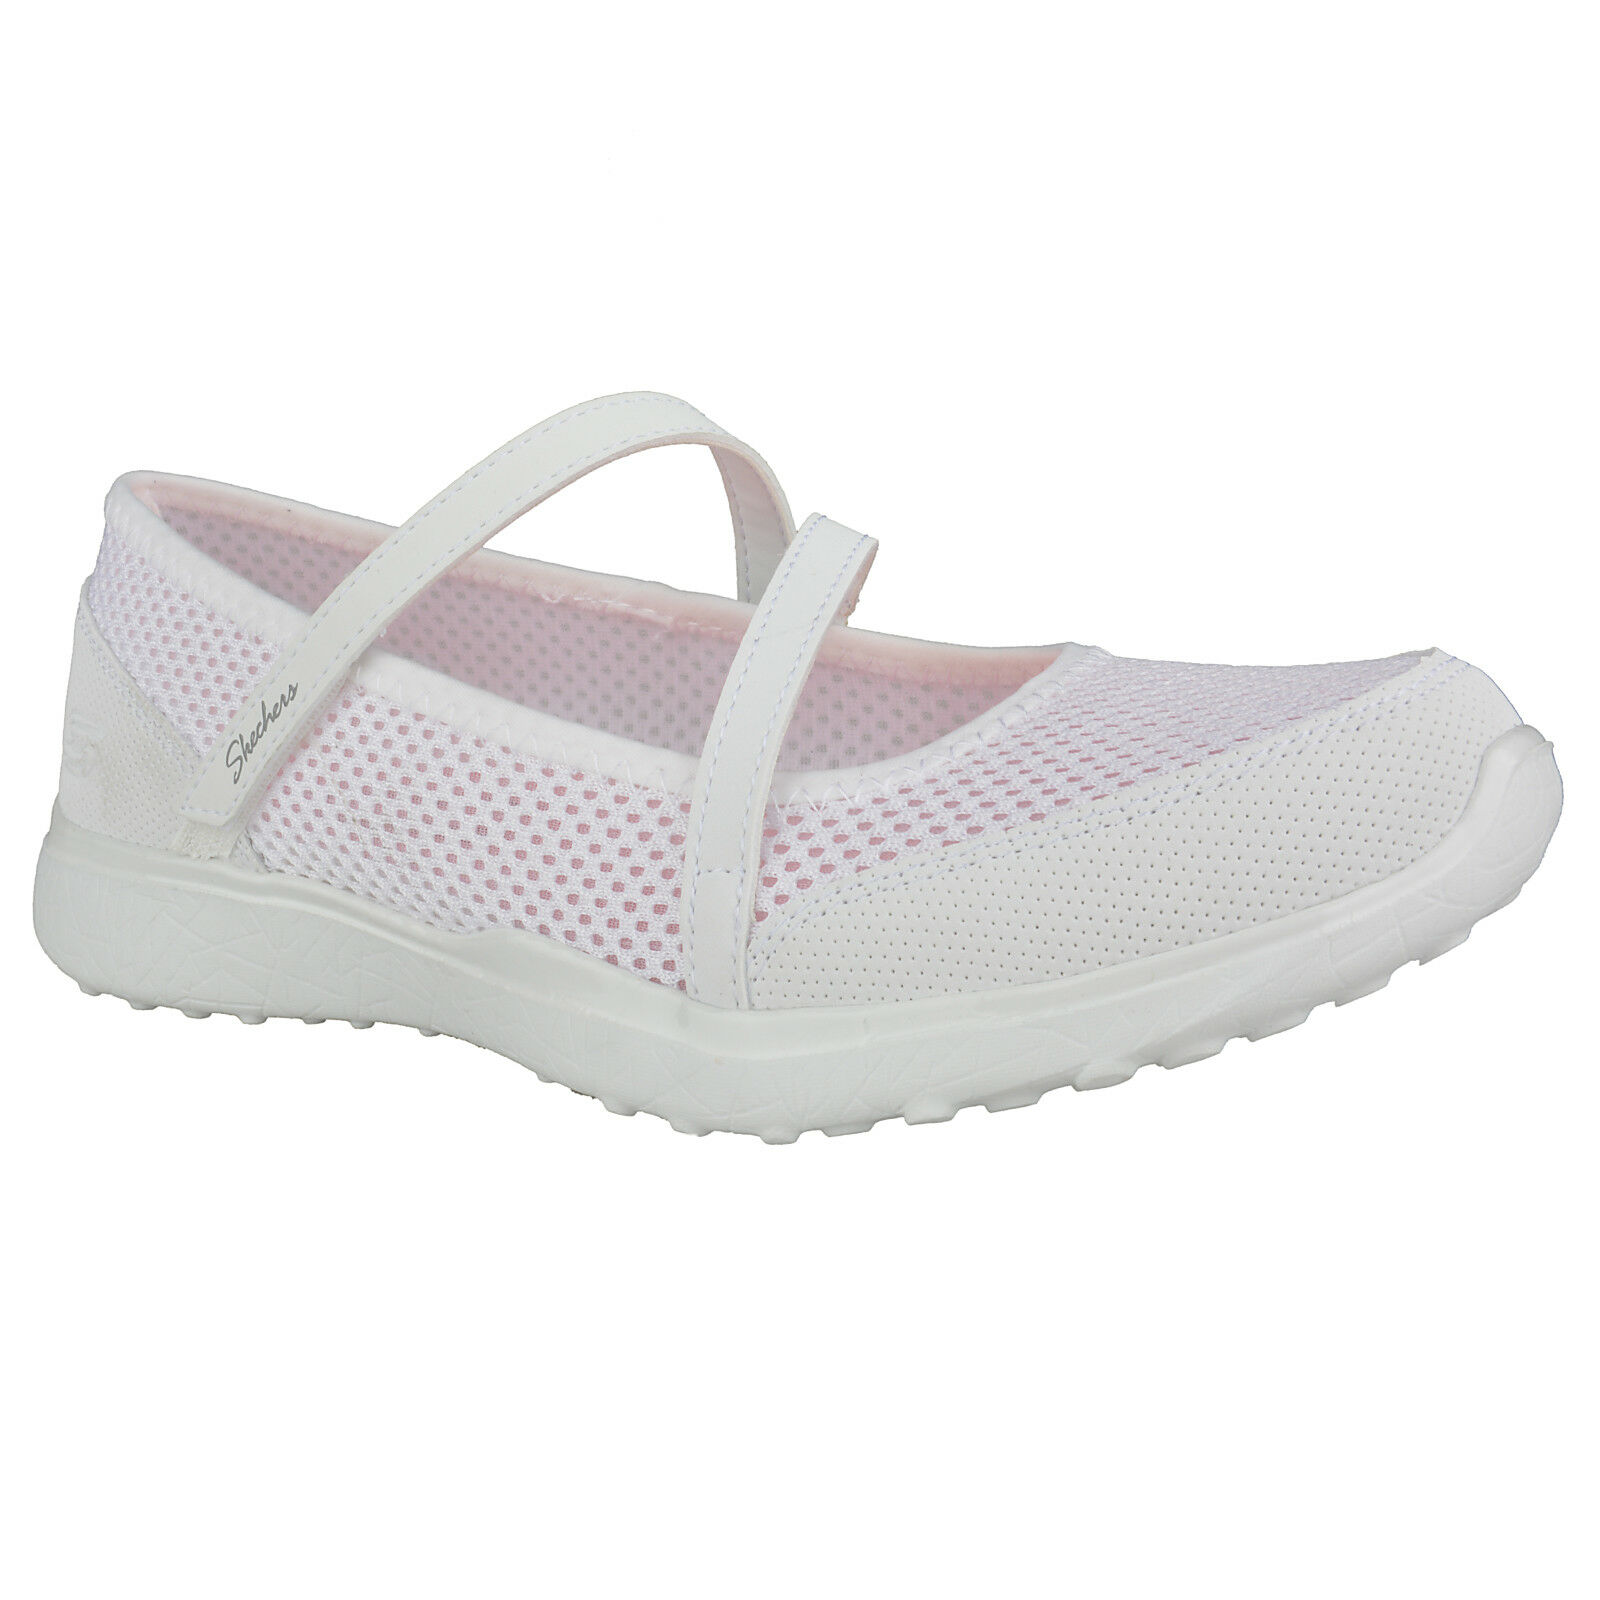 NEU NEU NEU SKECHERS Damen Ballerinas Sommerschuhe Slipper MICROBURST - IN THE OPEN Weiß 3ebafa